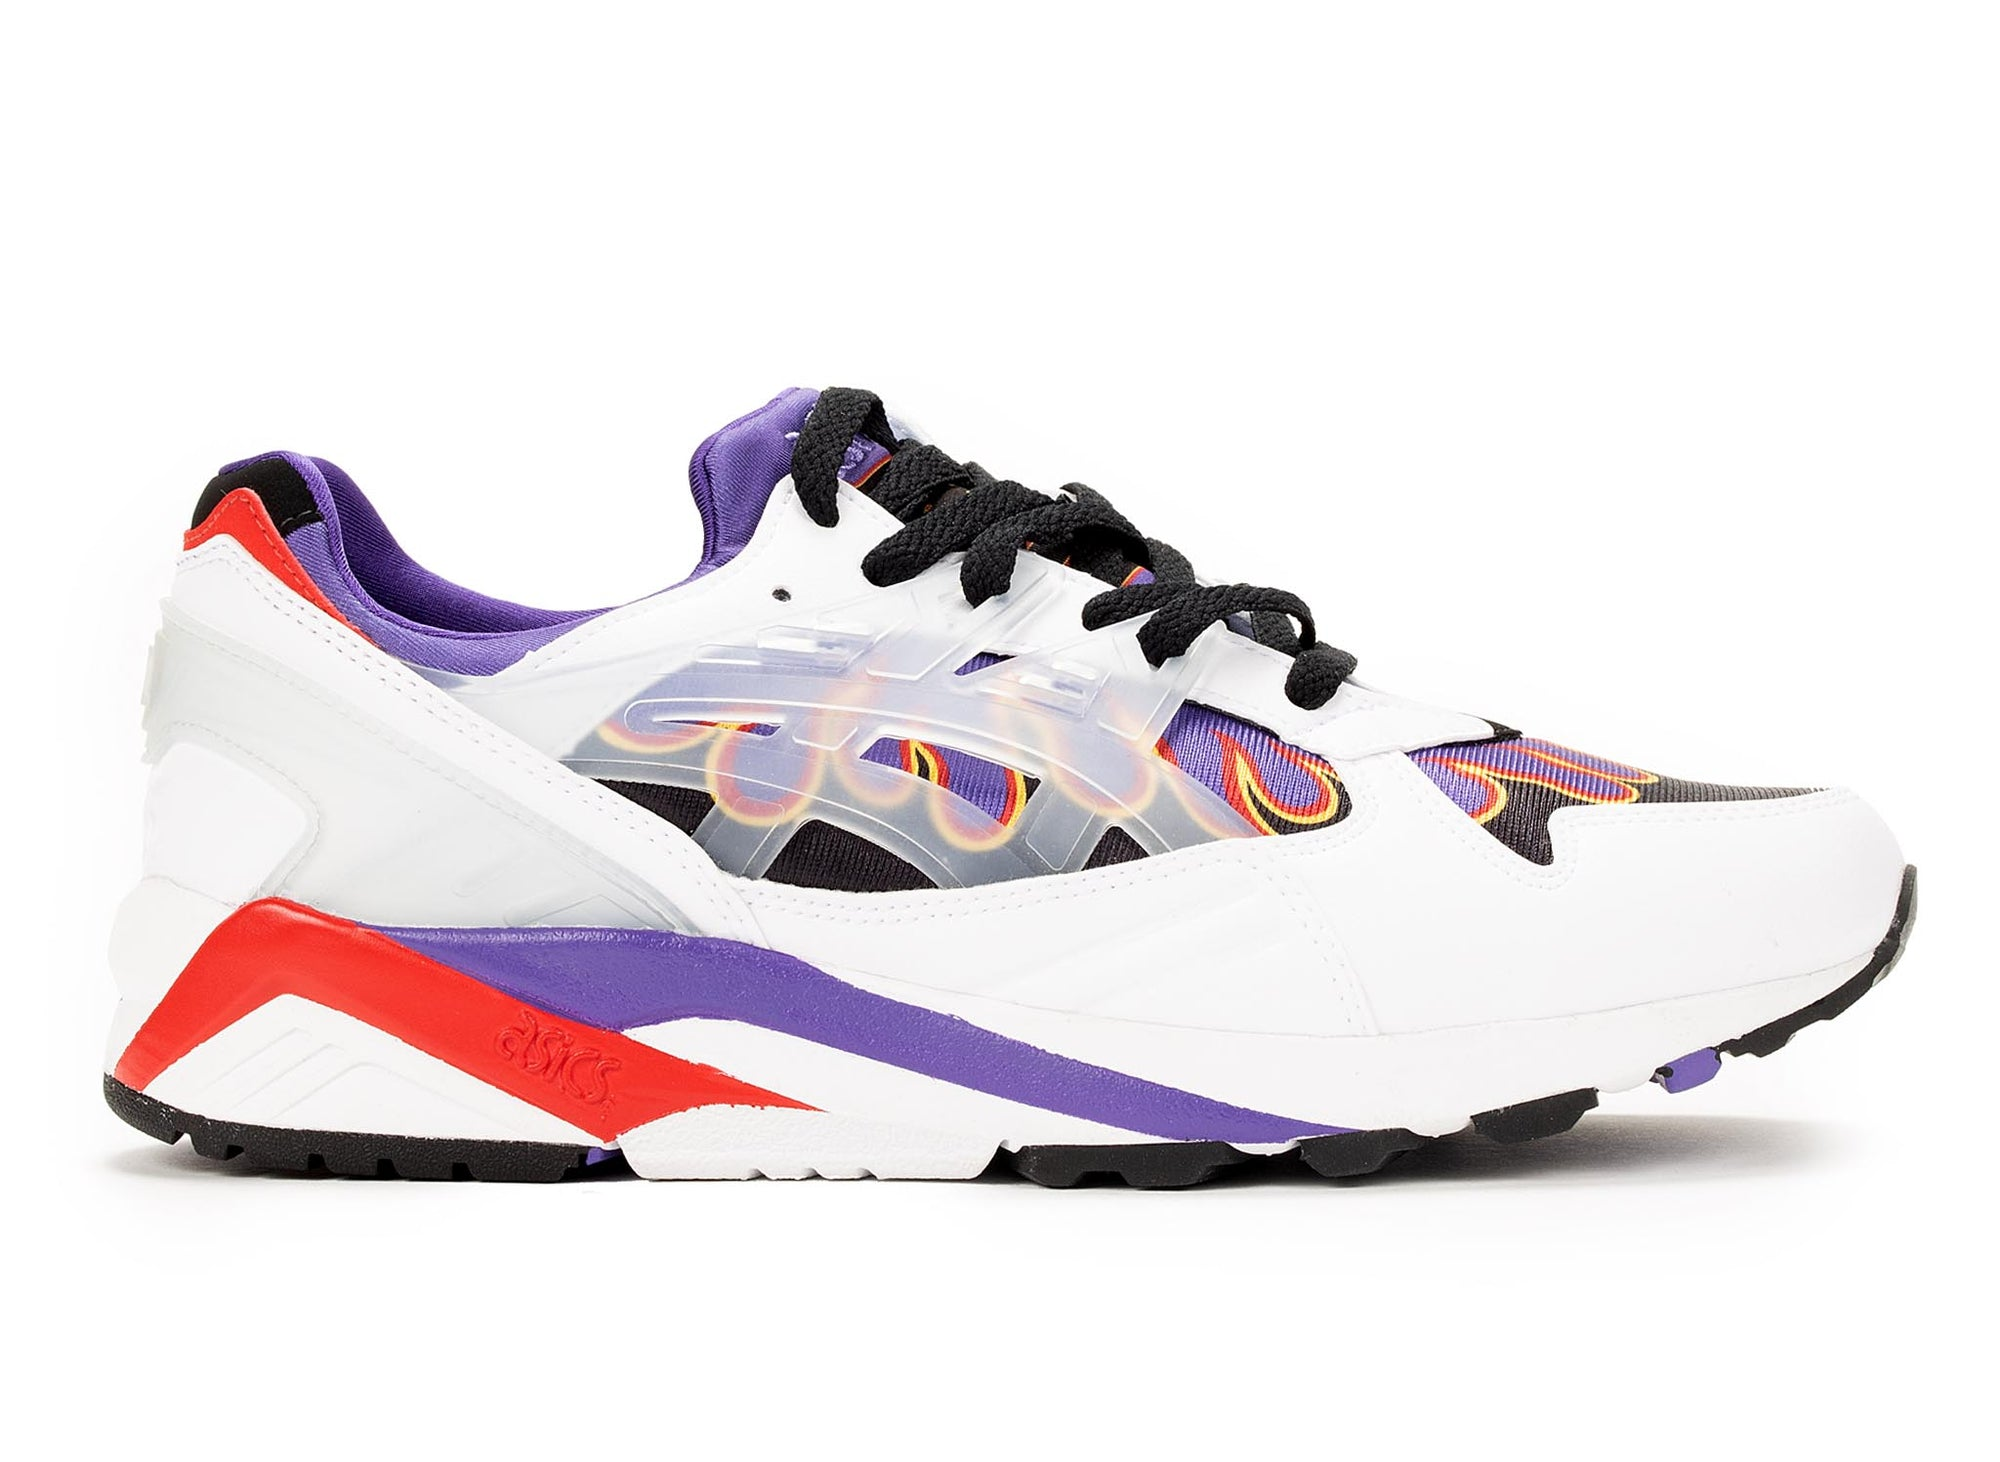 ASICS x Sneakerwolf GEL-KAYANO TRAINER